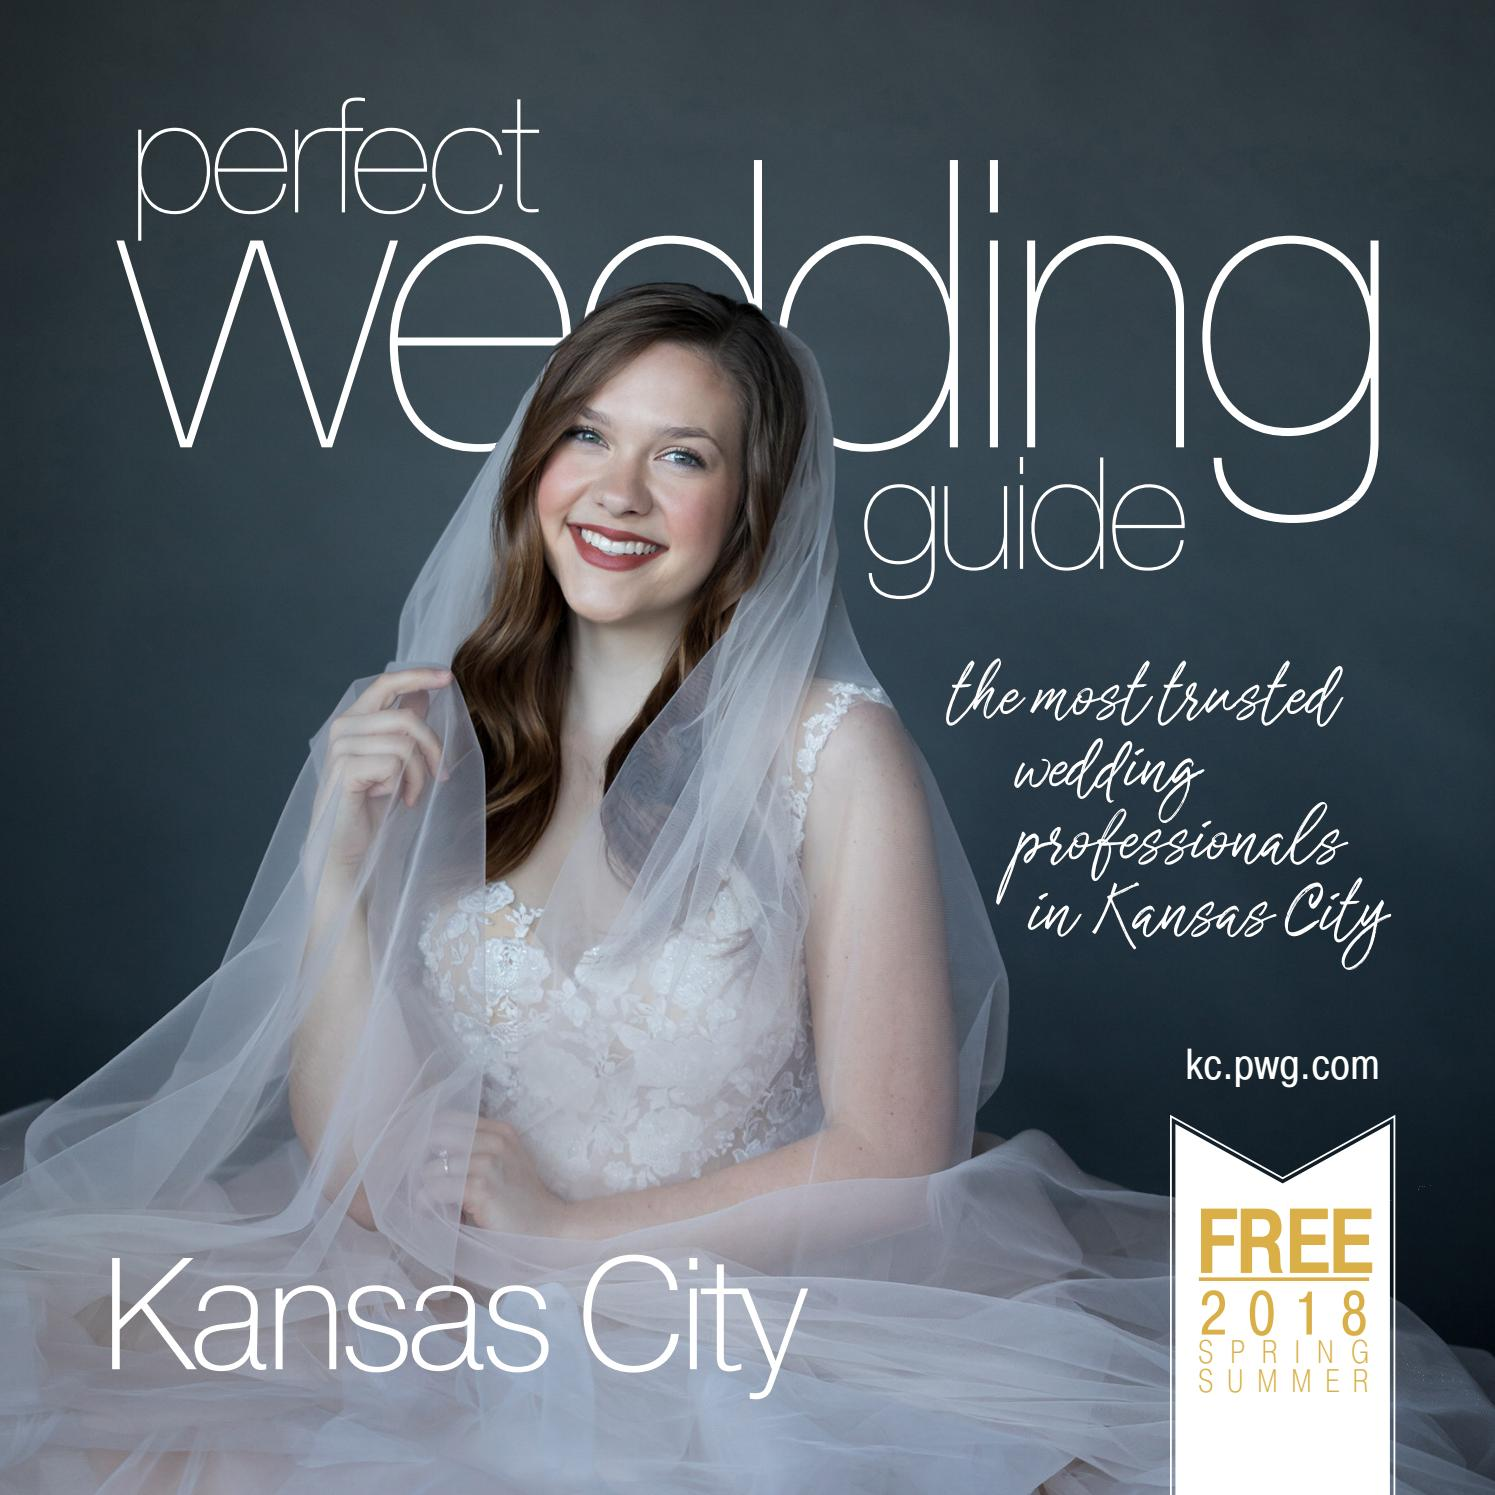 37a9afa3a12 Perfect Wedding Guide Kansas City Winter/Spring 2018 by Rick ...